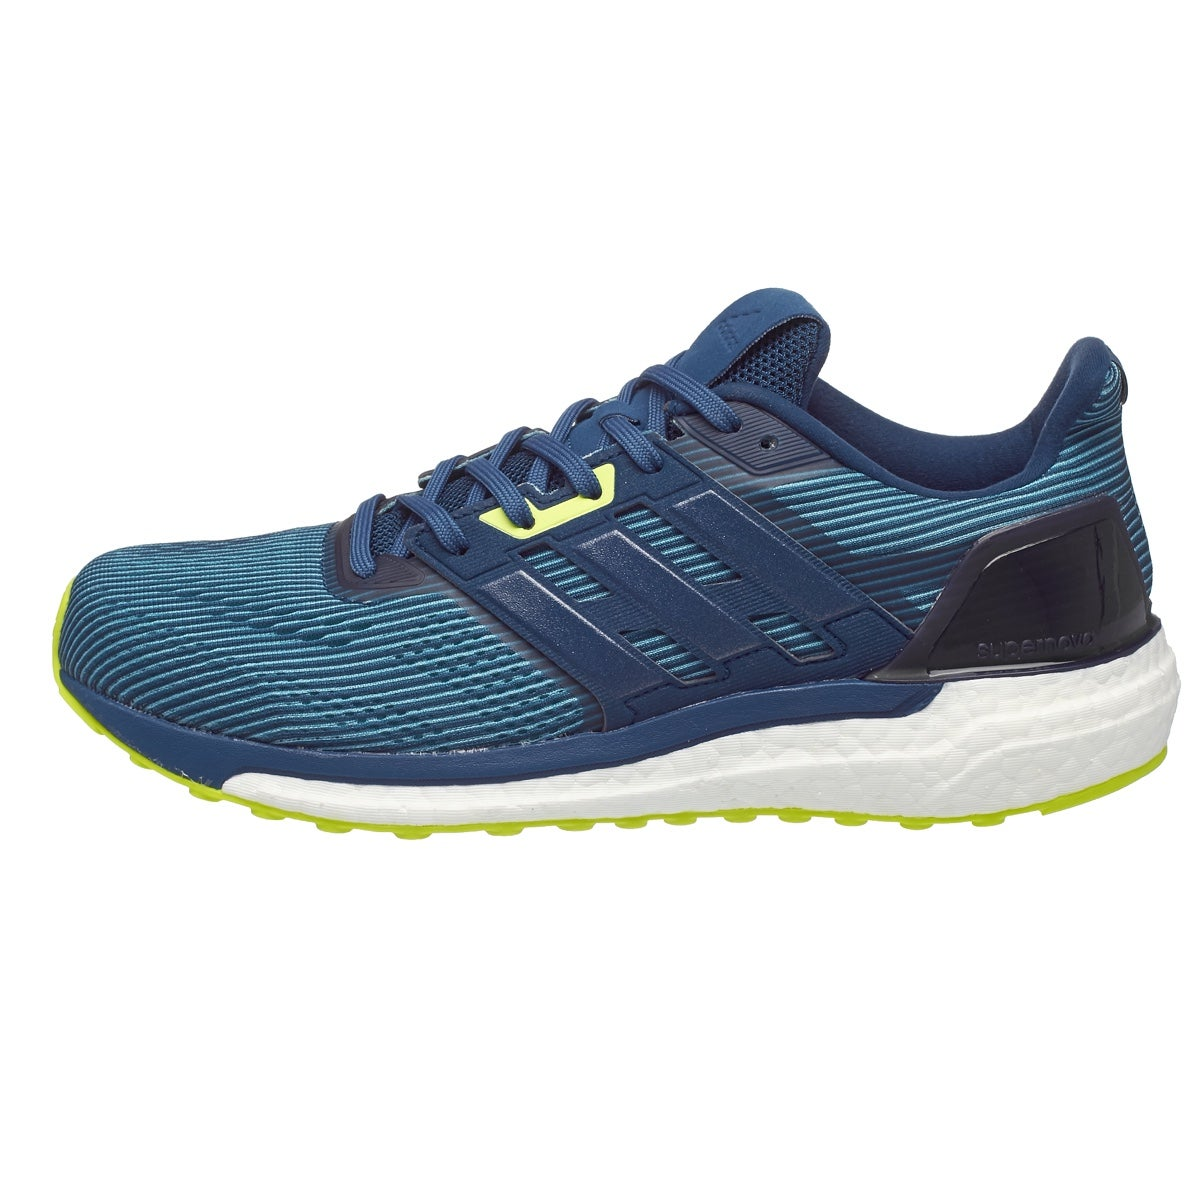 adidas Supernova Men's Shoes Vapor Blue 360° View